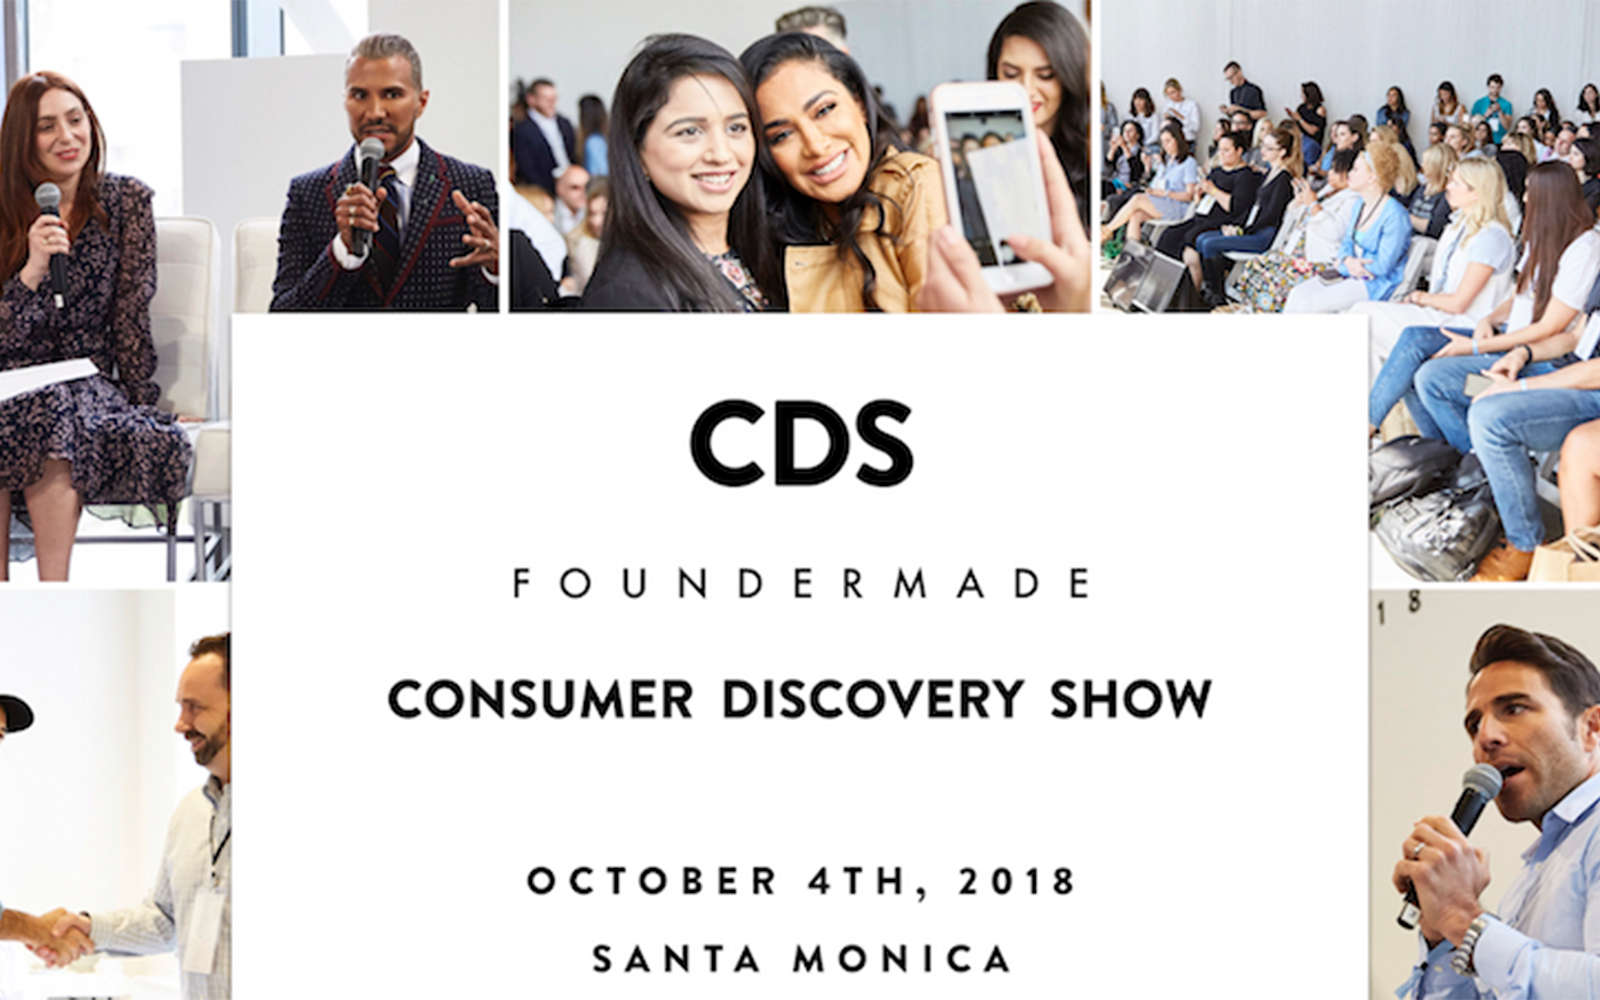 We'll be at FounderMade's Consumer Discovery Show!